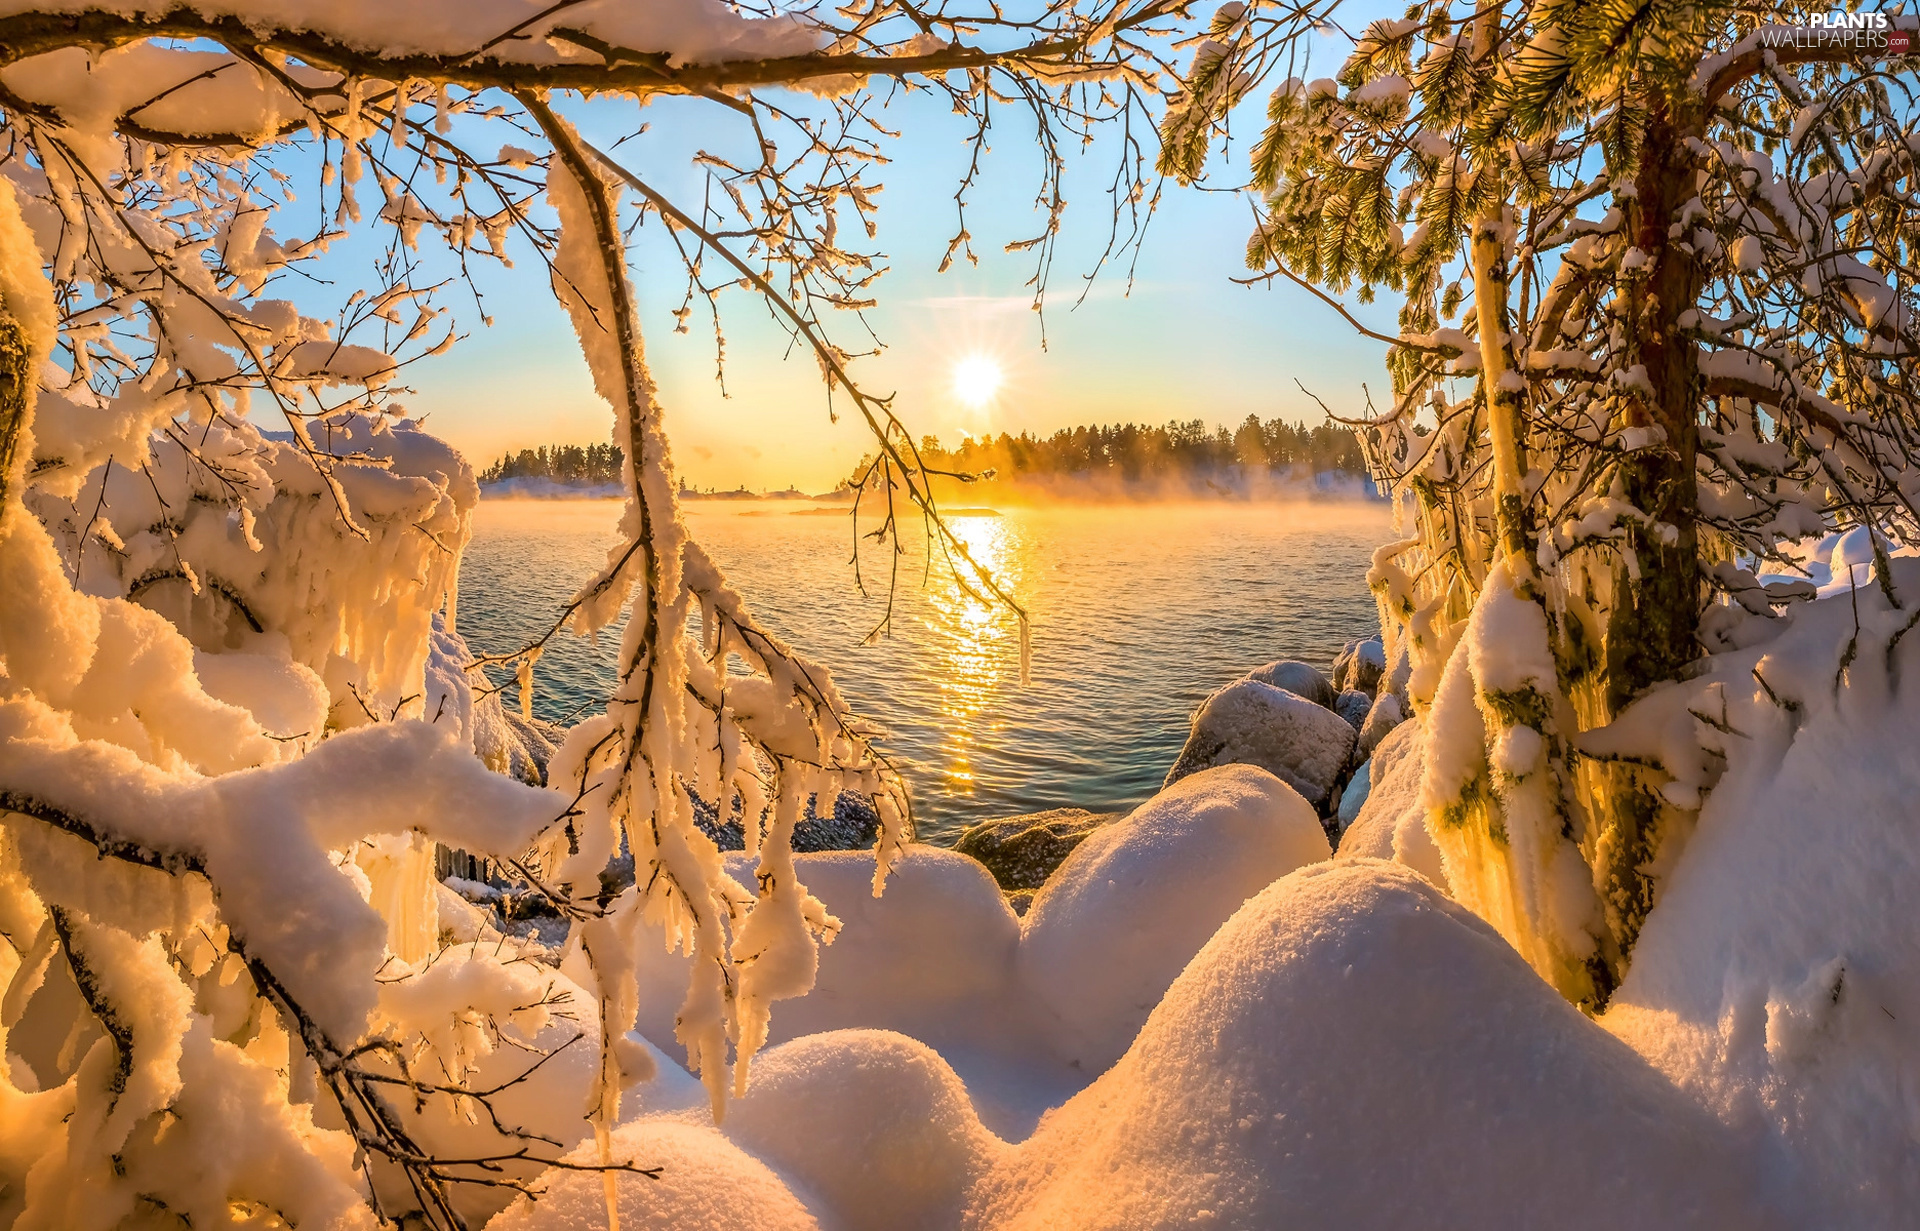 Great Sunsets, winter, Fog, forest, trees, branch pics, Snowy, lake, snow, viewes, Sky